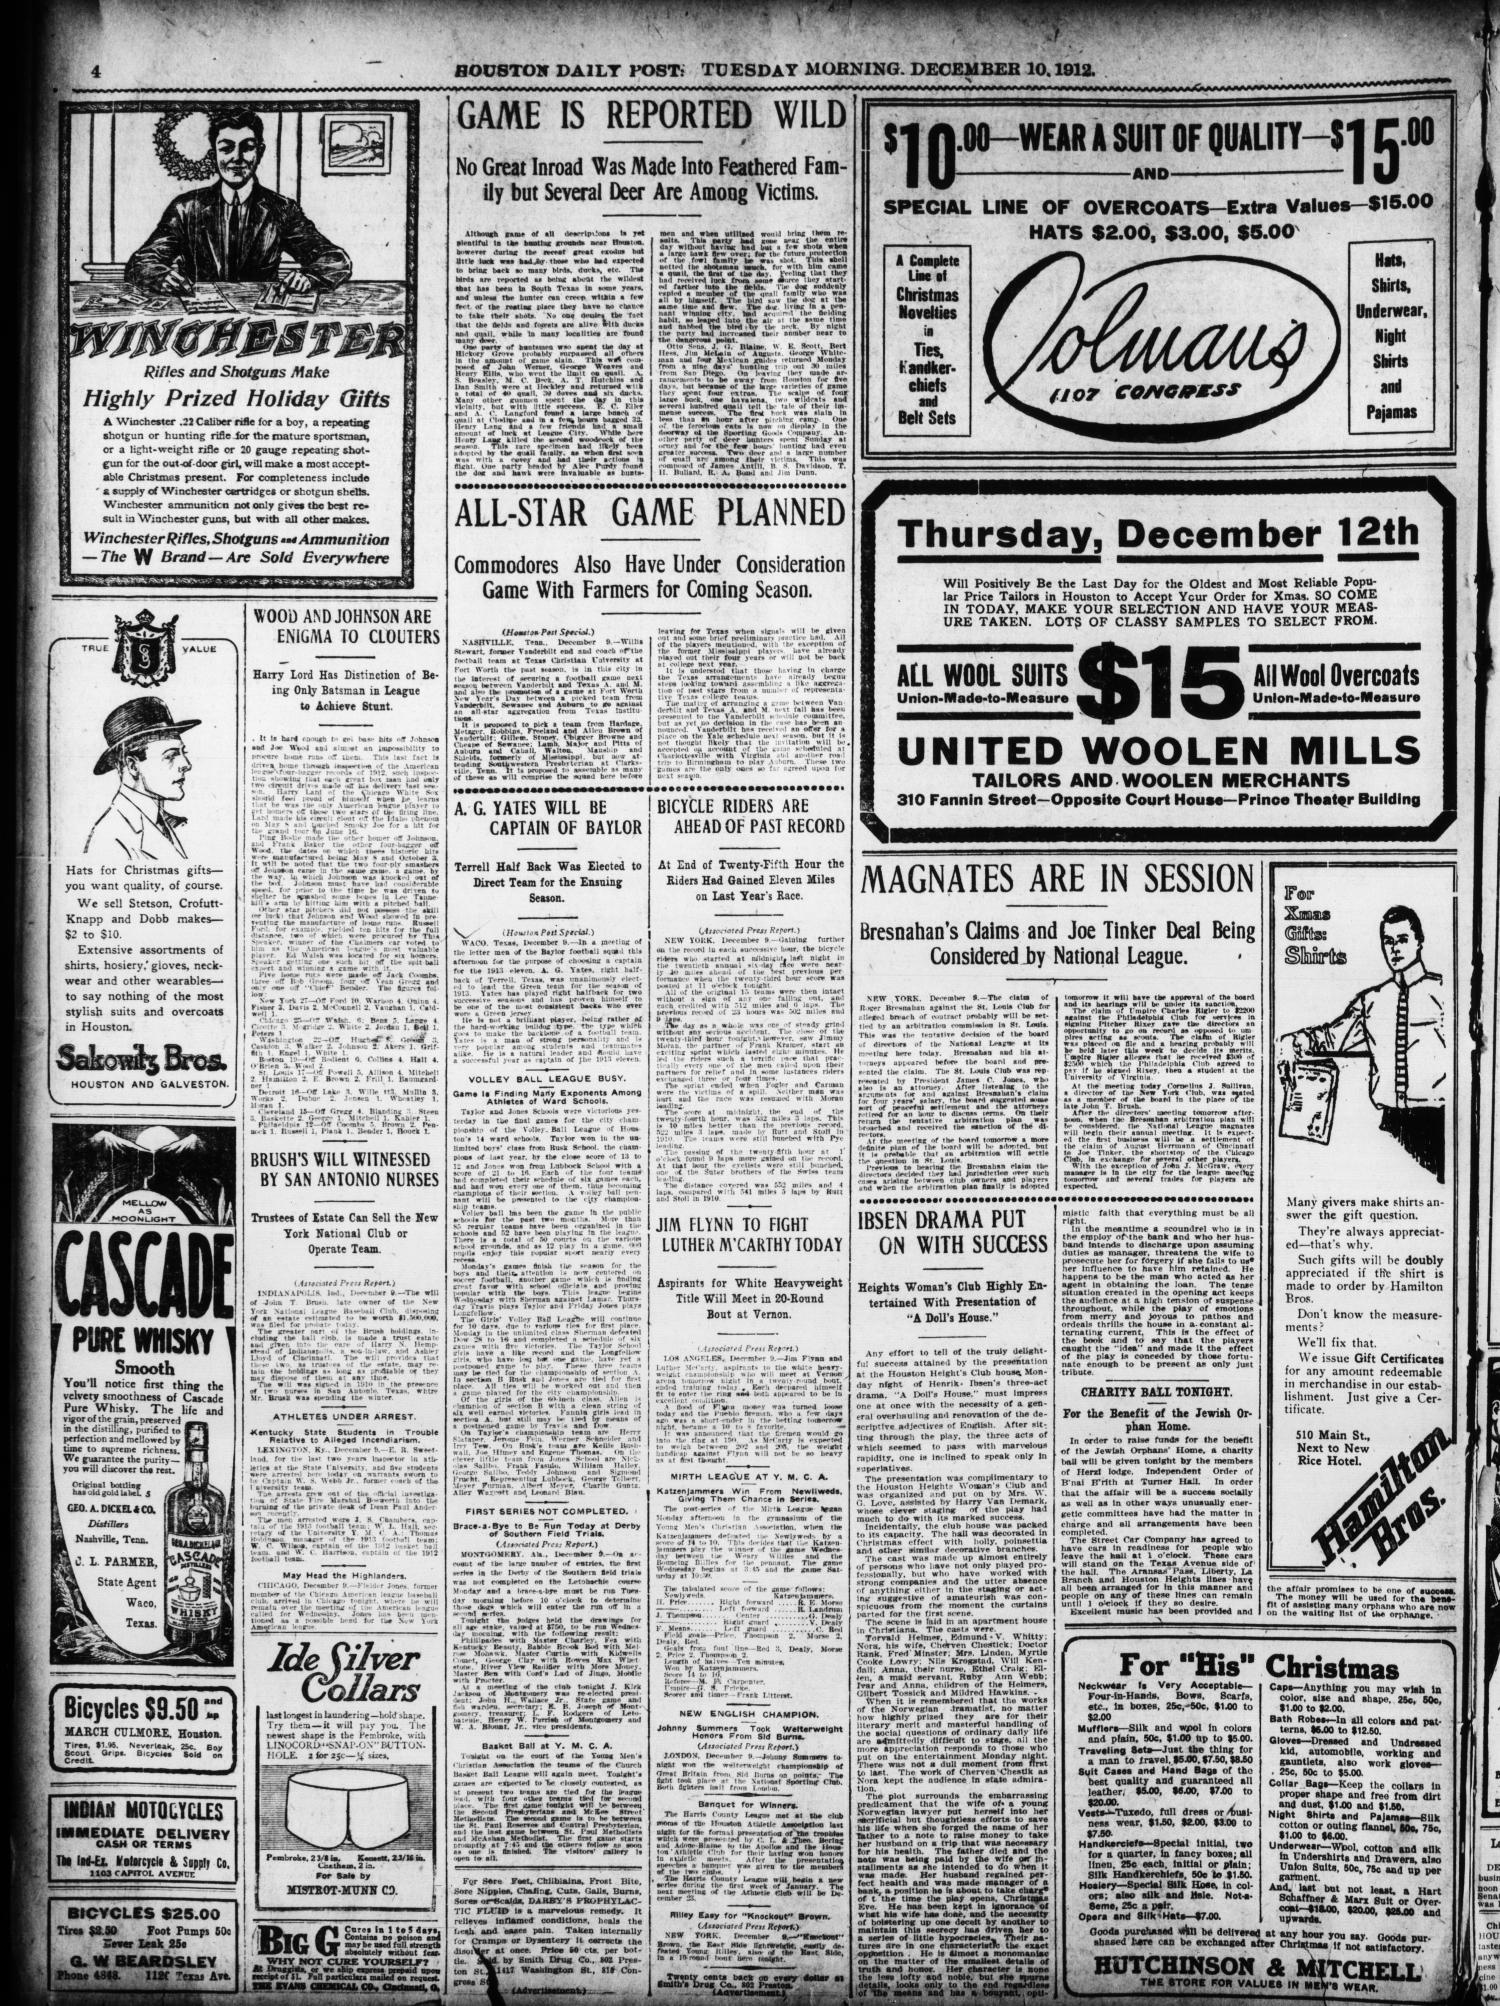 The Houston Post. (Houston, Tex.), Vol. 27, Ed. 1 Tuesday, December 10,  1912 - Page 4 of 18 - The Portal to Texas History